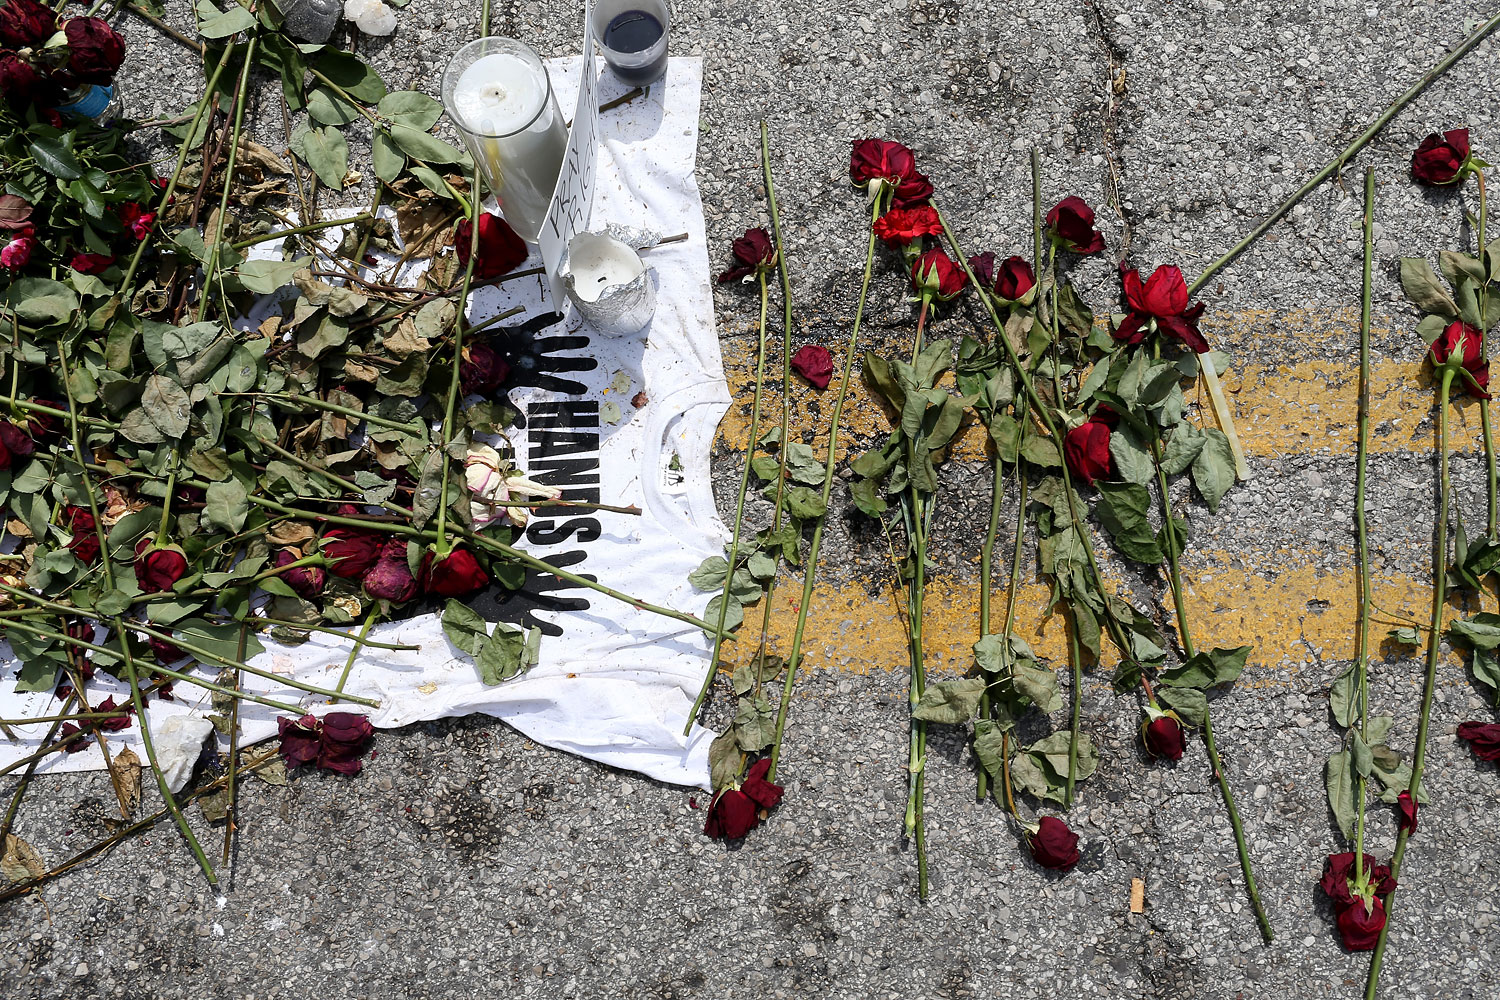 Roses are seen in a memorial setup for Michael Brown on the spot where his body lay after he was shot by police, Aug. 22, 2014 in Ferguson, Missouri.